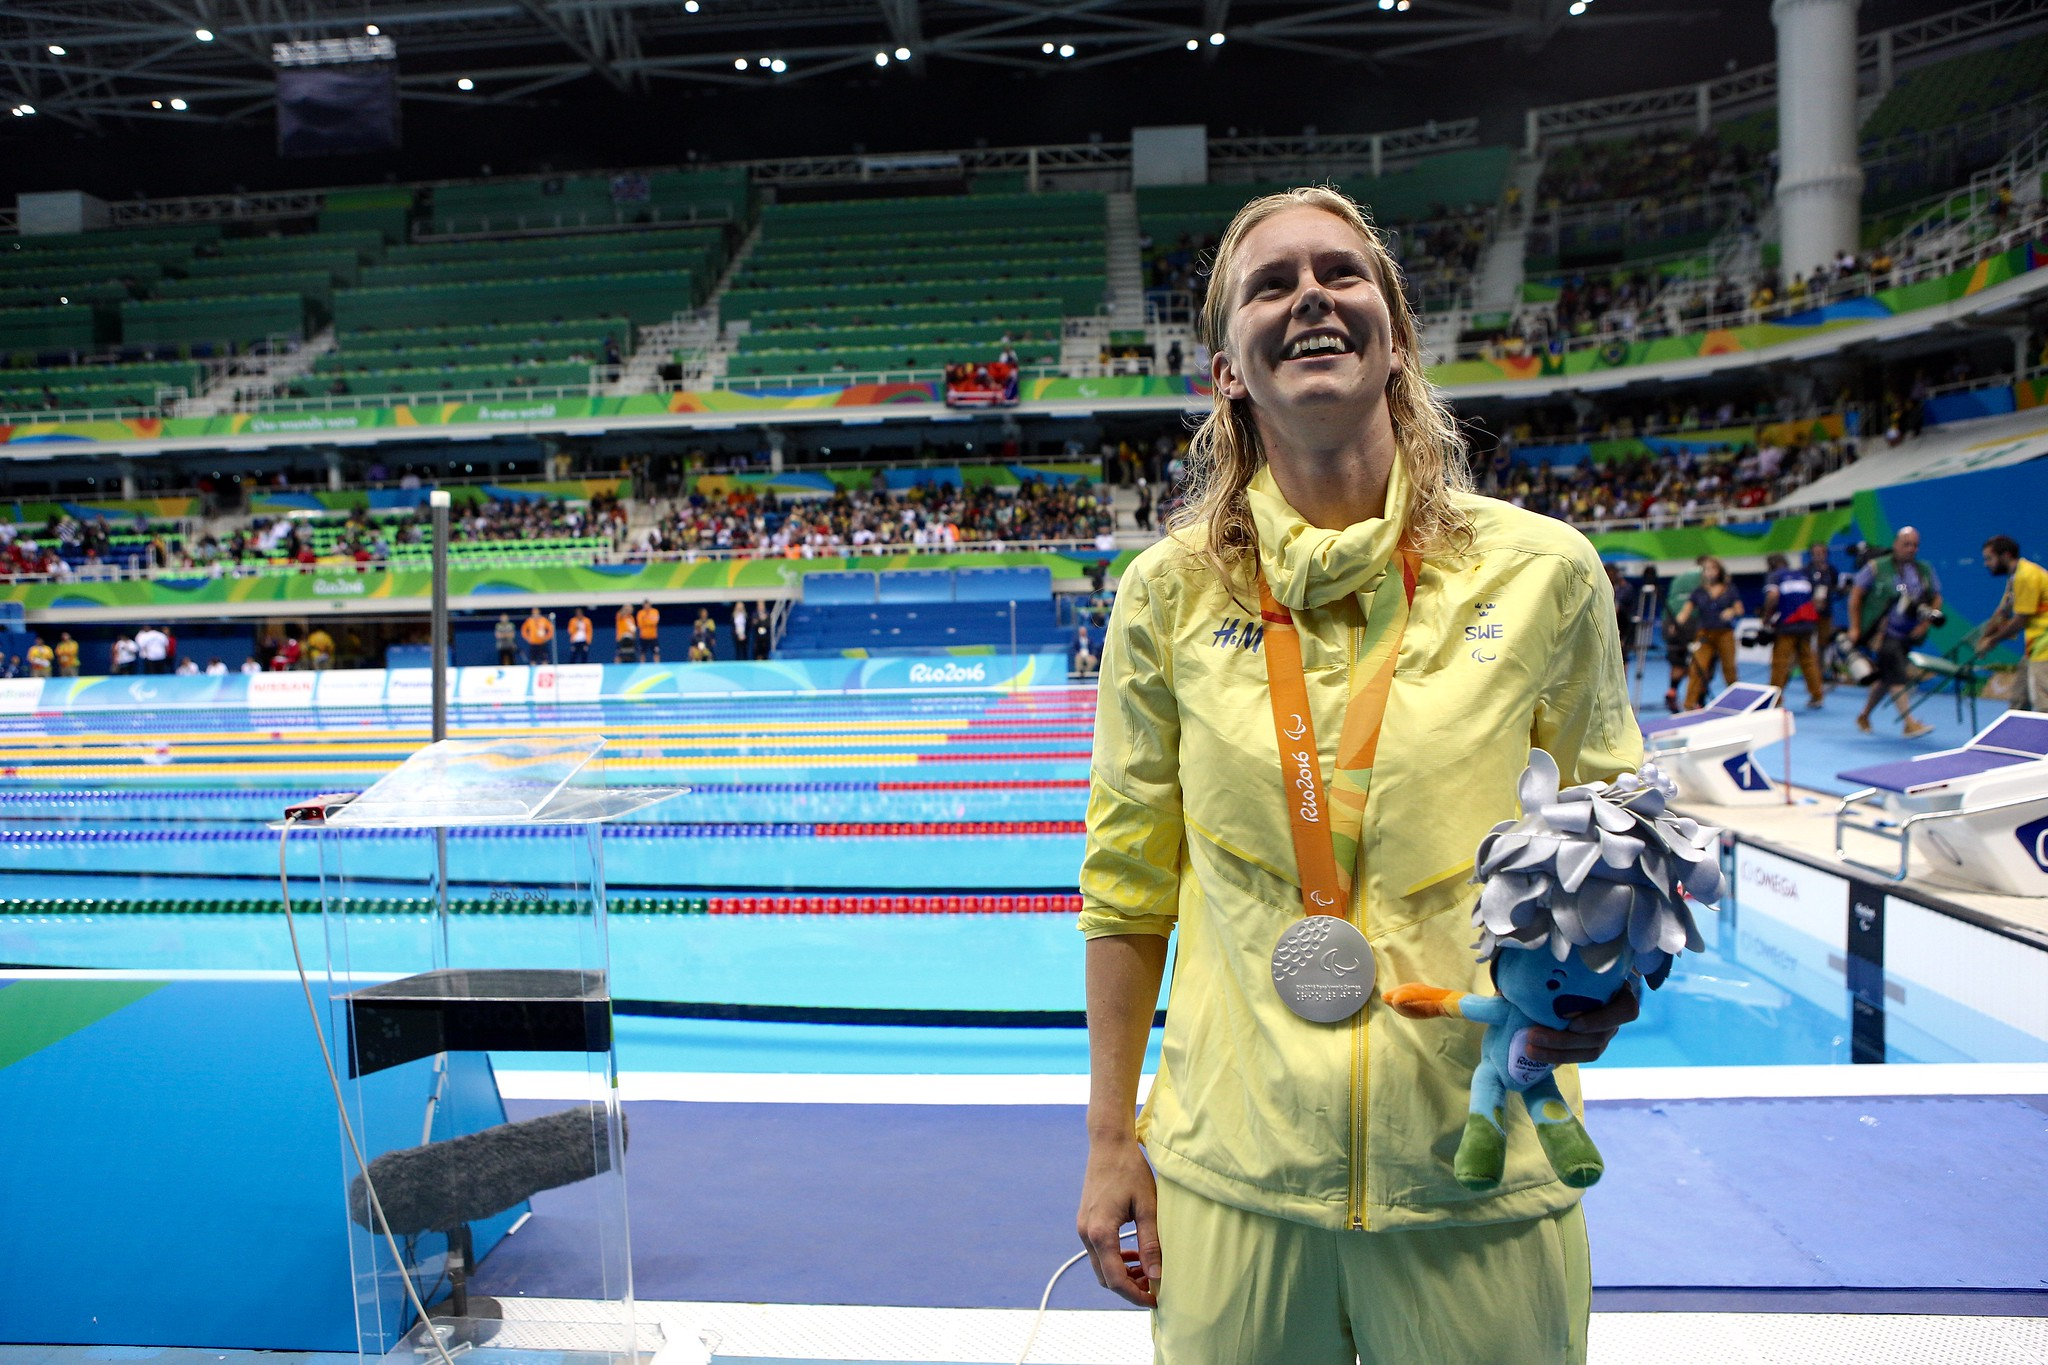 Maja Reichard - Swimming - Women's 200m medley s11 Silver medal - Paralympics Rio 2016